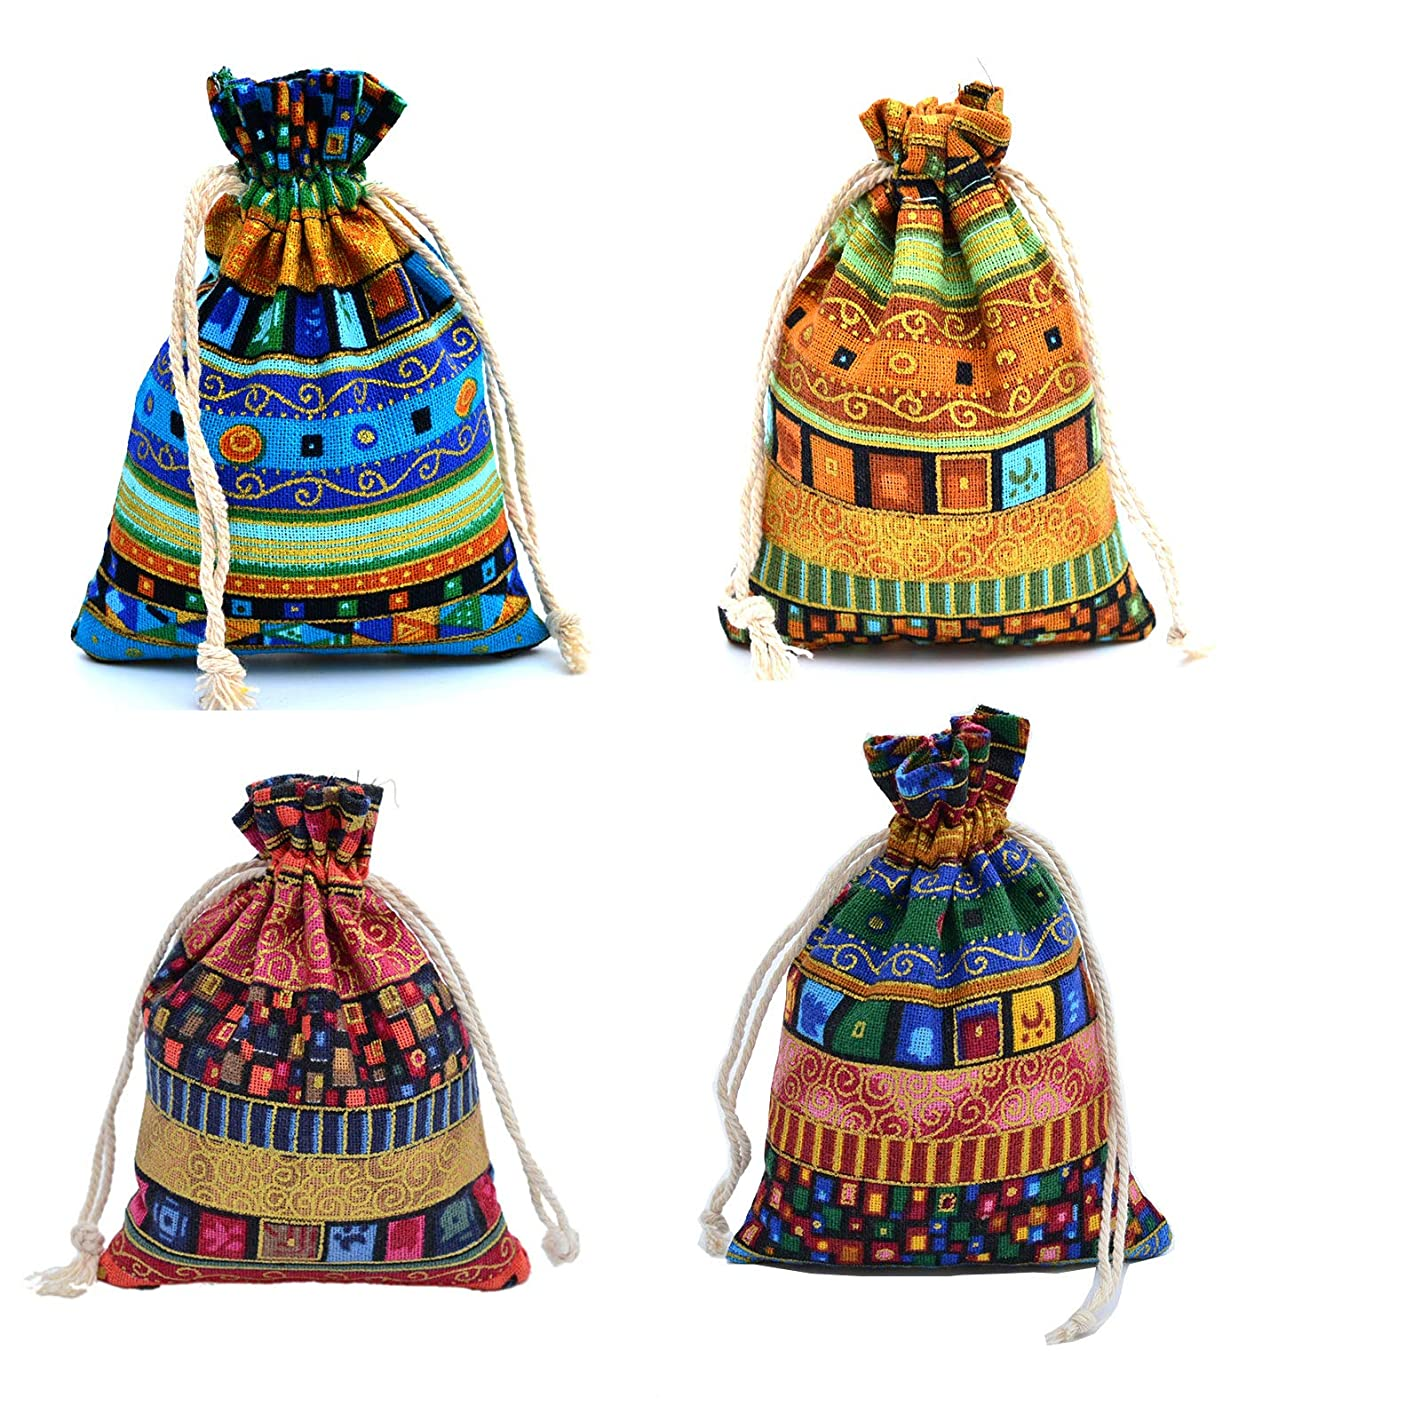 Venxic 20PCS Aztec Indian Prints Gift Bags Drawstring Jewelry Pouches Party Favors 5.4